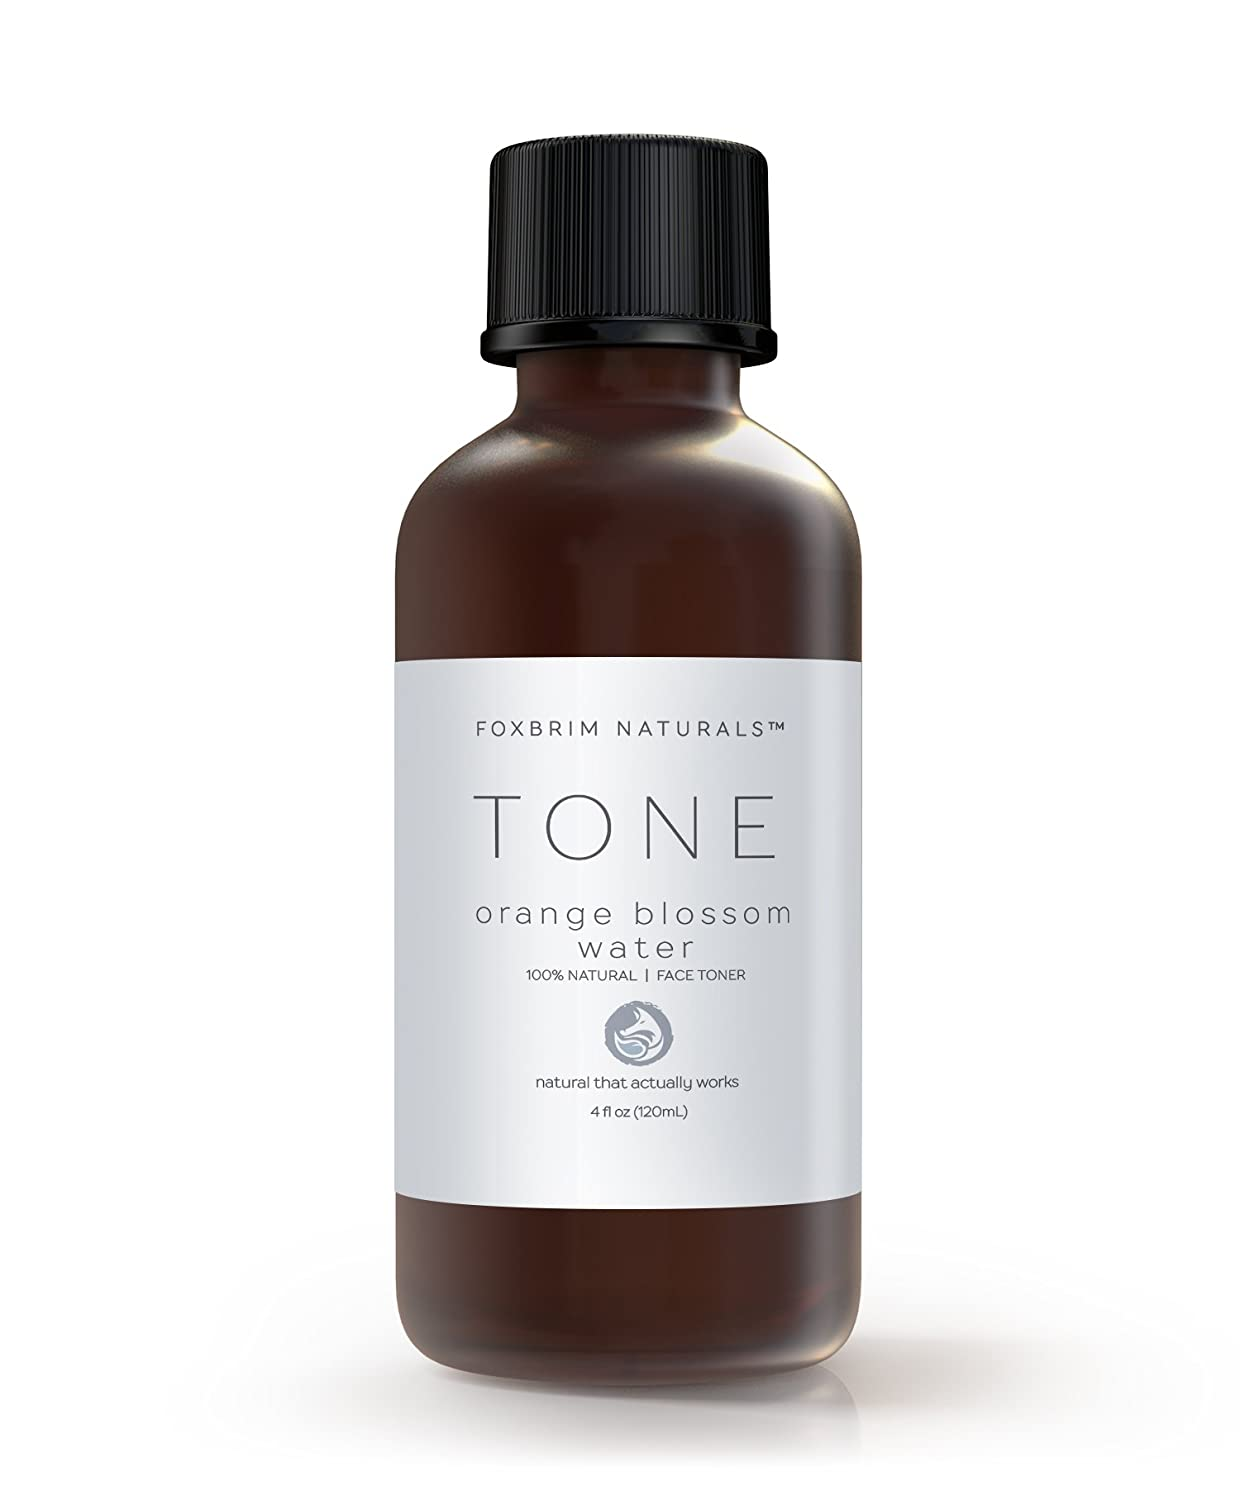 Orange Blossom Water Toner - 100% All-Natural Face Toner - Beautiful Floral Water - To Tone & Refresh Skin - Balance pH and Skin Moisture - Alcohol Free - Imported from Morocco - Renowned Neroli Distillate/Hydrosol - Perfect For A Complete Beauty Regim